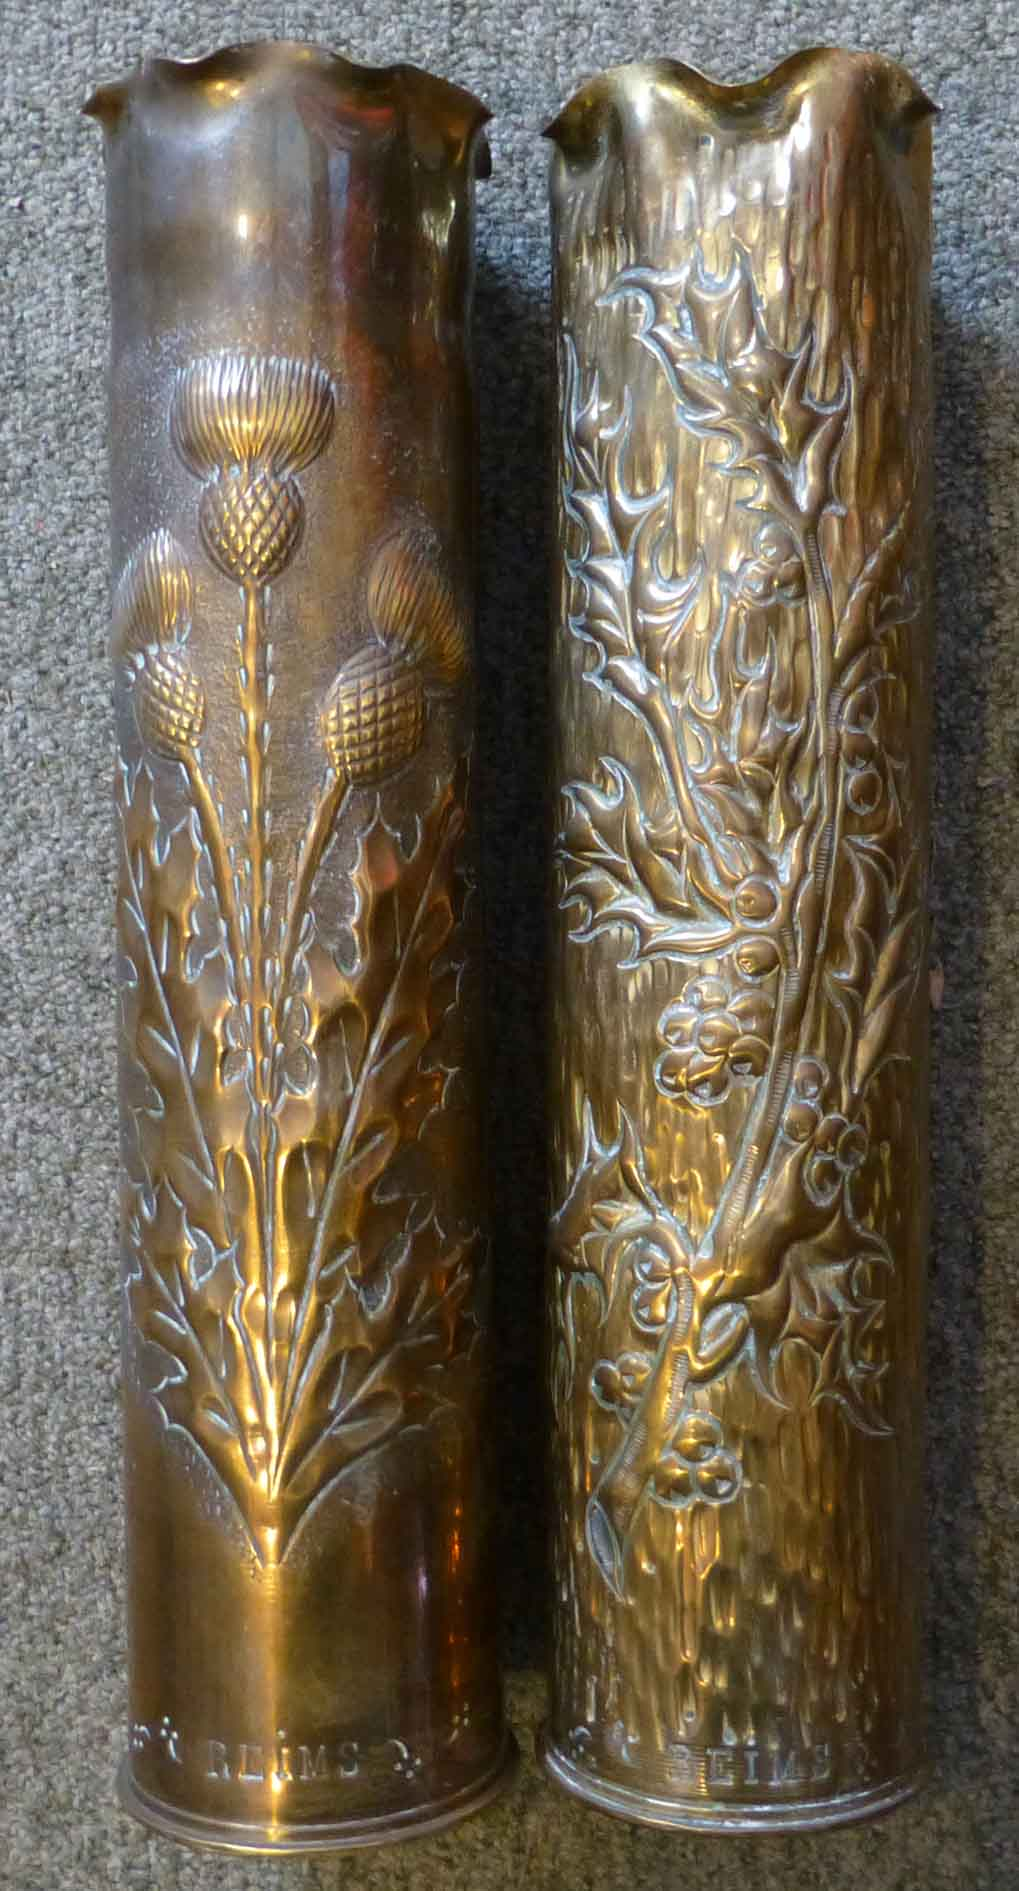 Decoration Reims Trench Art